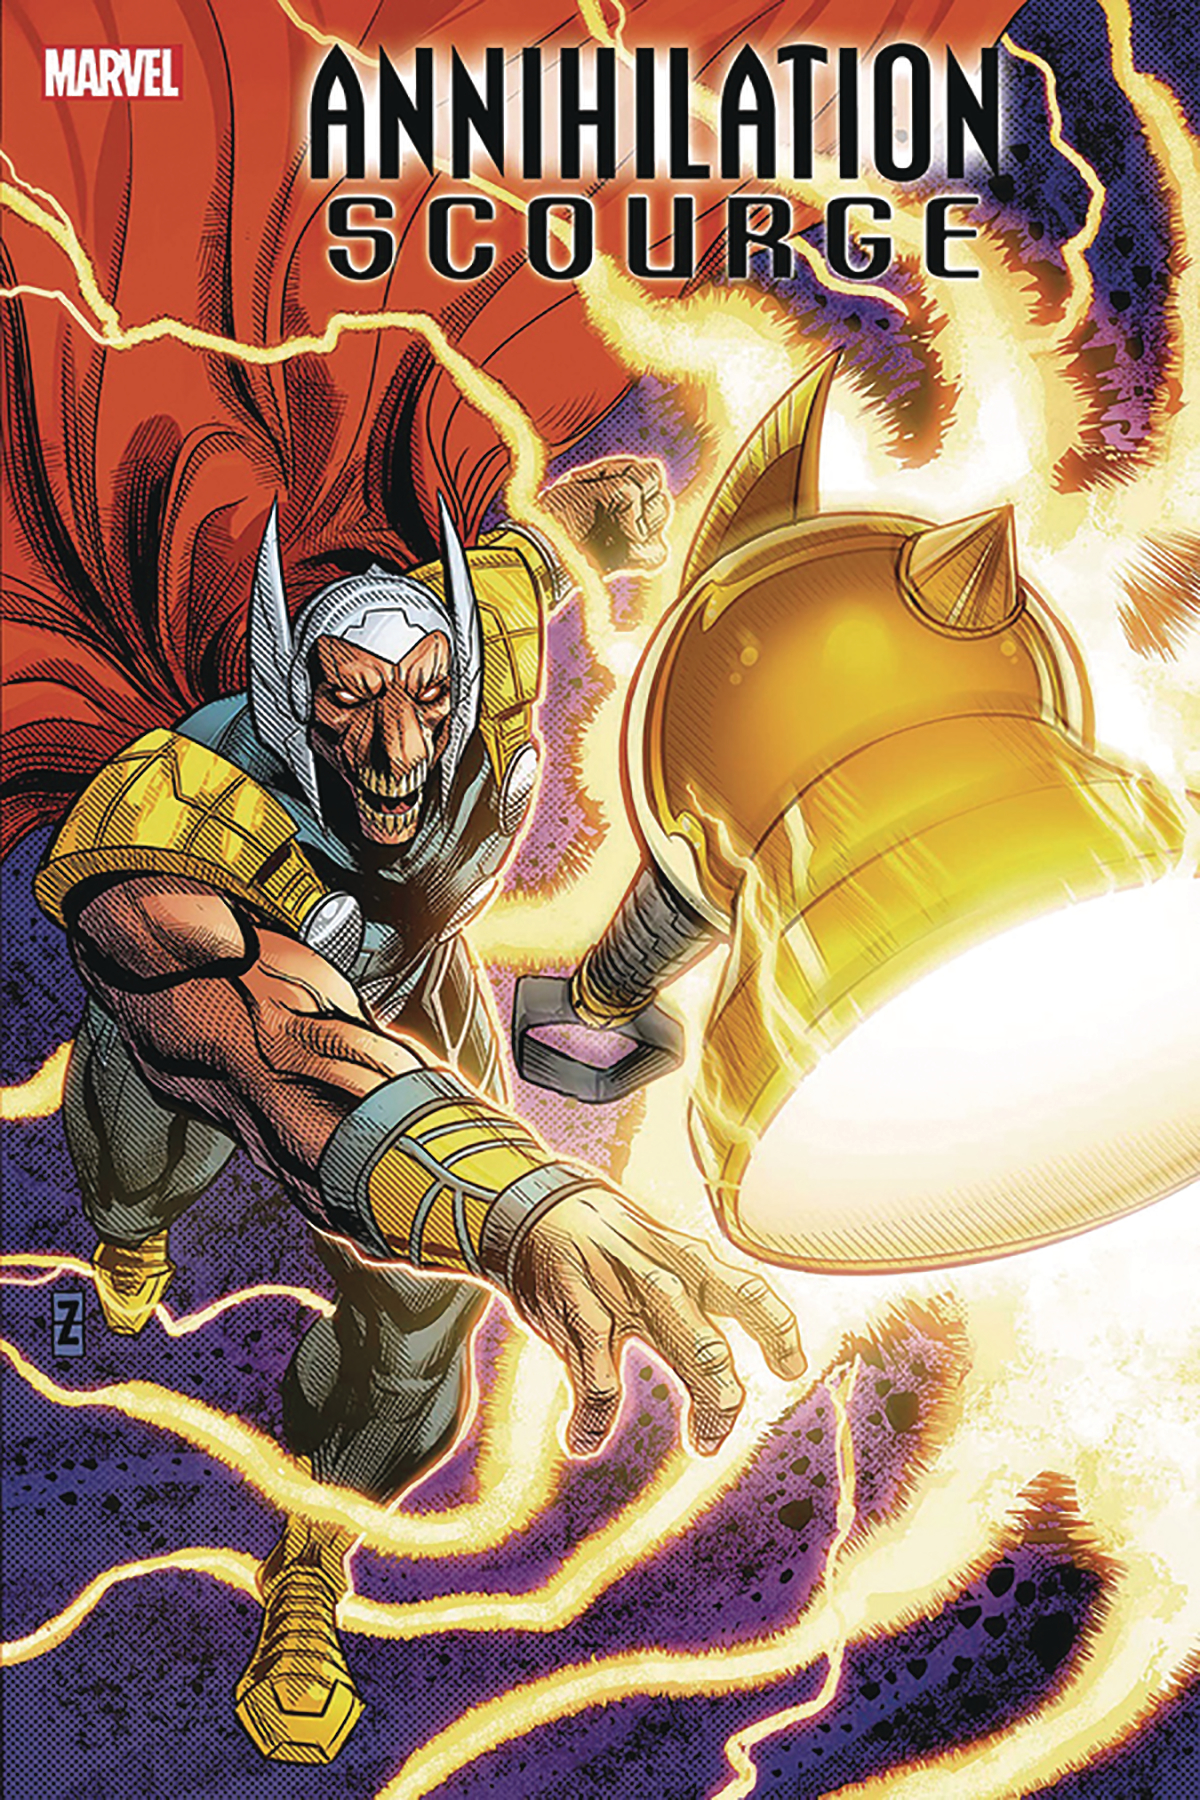 DF ANNIHILATION SCOURGE BETA RAY BILL #1 SGN MORECI